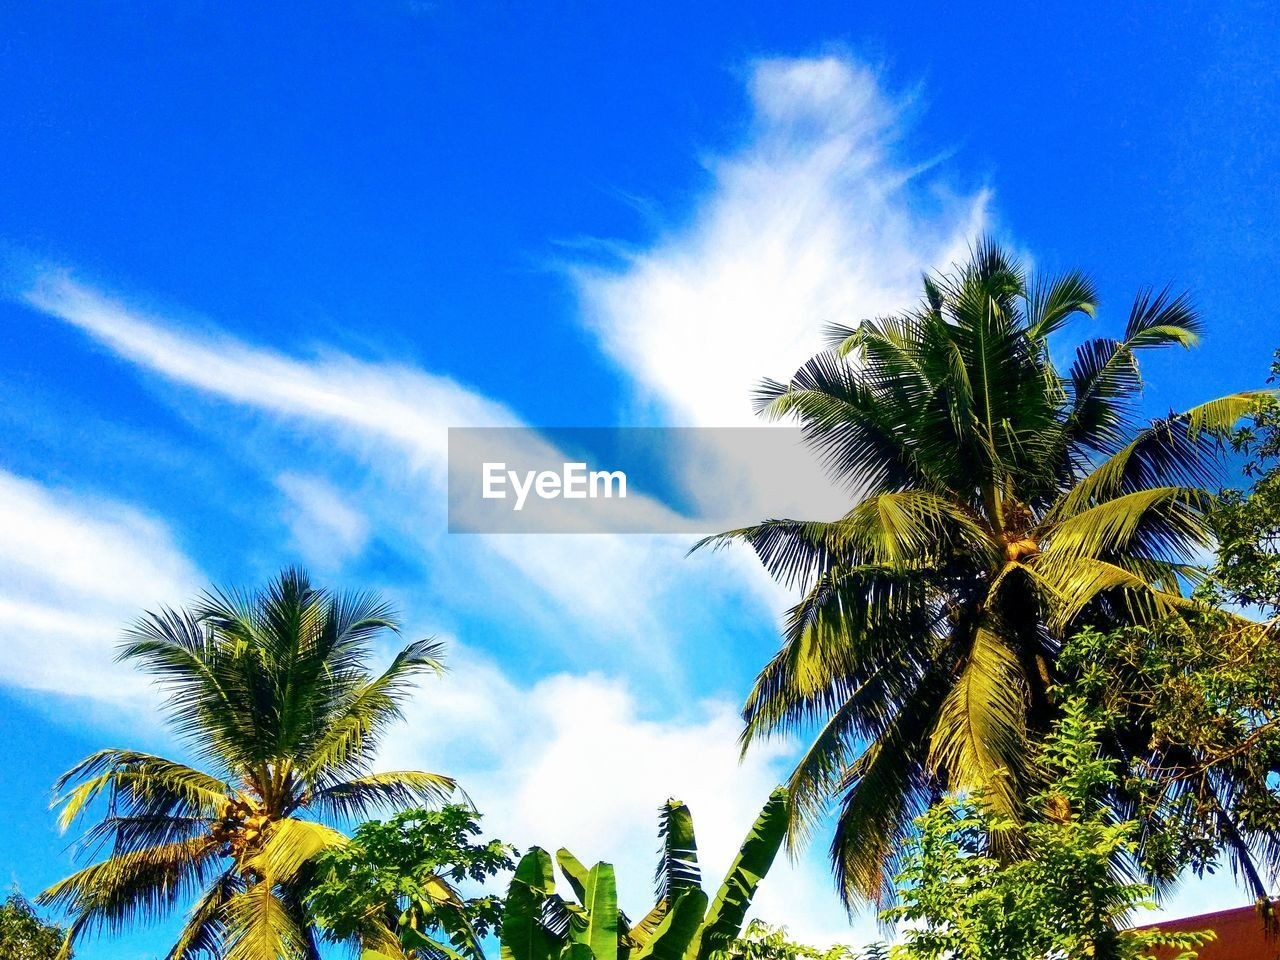 tree, palm tree, tropical climate, sky, plant, low angle view, beauty in nature, cloud - sky, growth, nature, day, no people, blue, coconut palm tree, tranquility, leaf, scenics - nature, sunlight, green color, tranquil scene, tropical tree, palm leaf